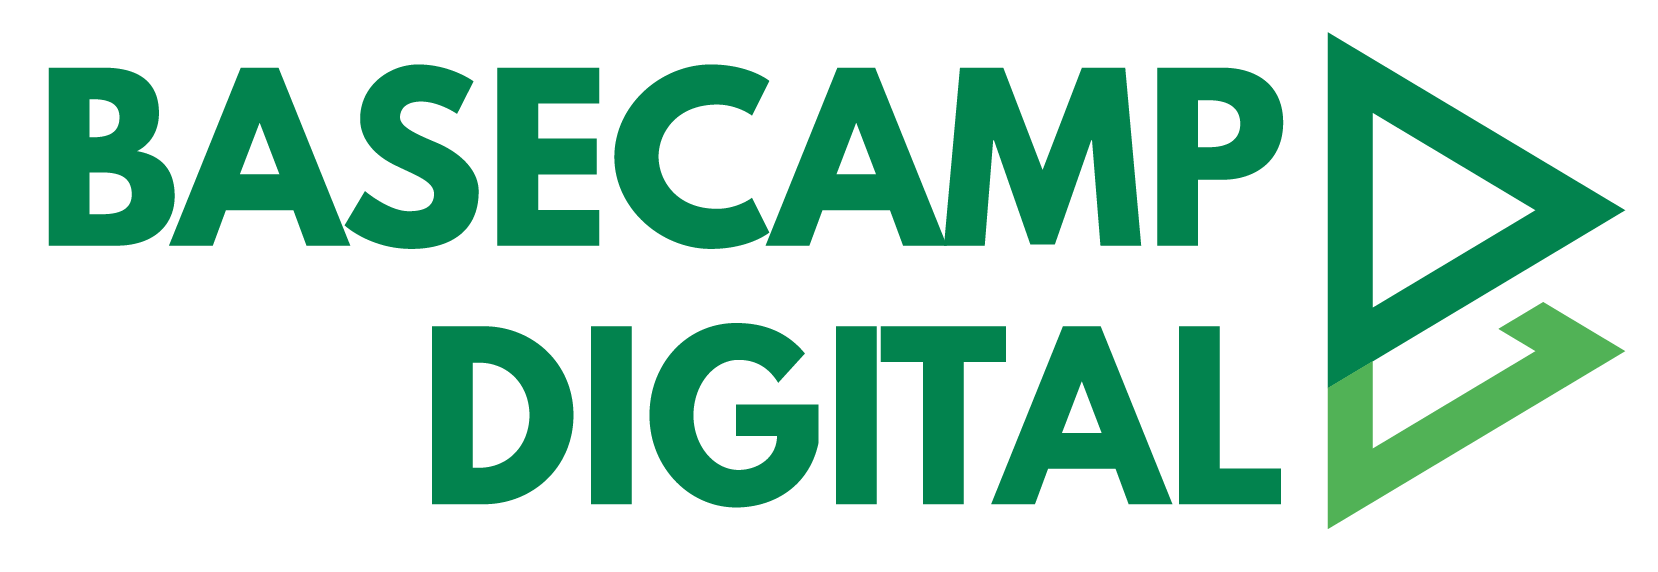 BaseCamp Digital - Digtial Marketing Courses in Andheri, Mumbai